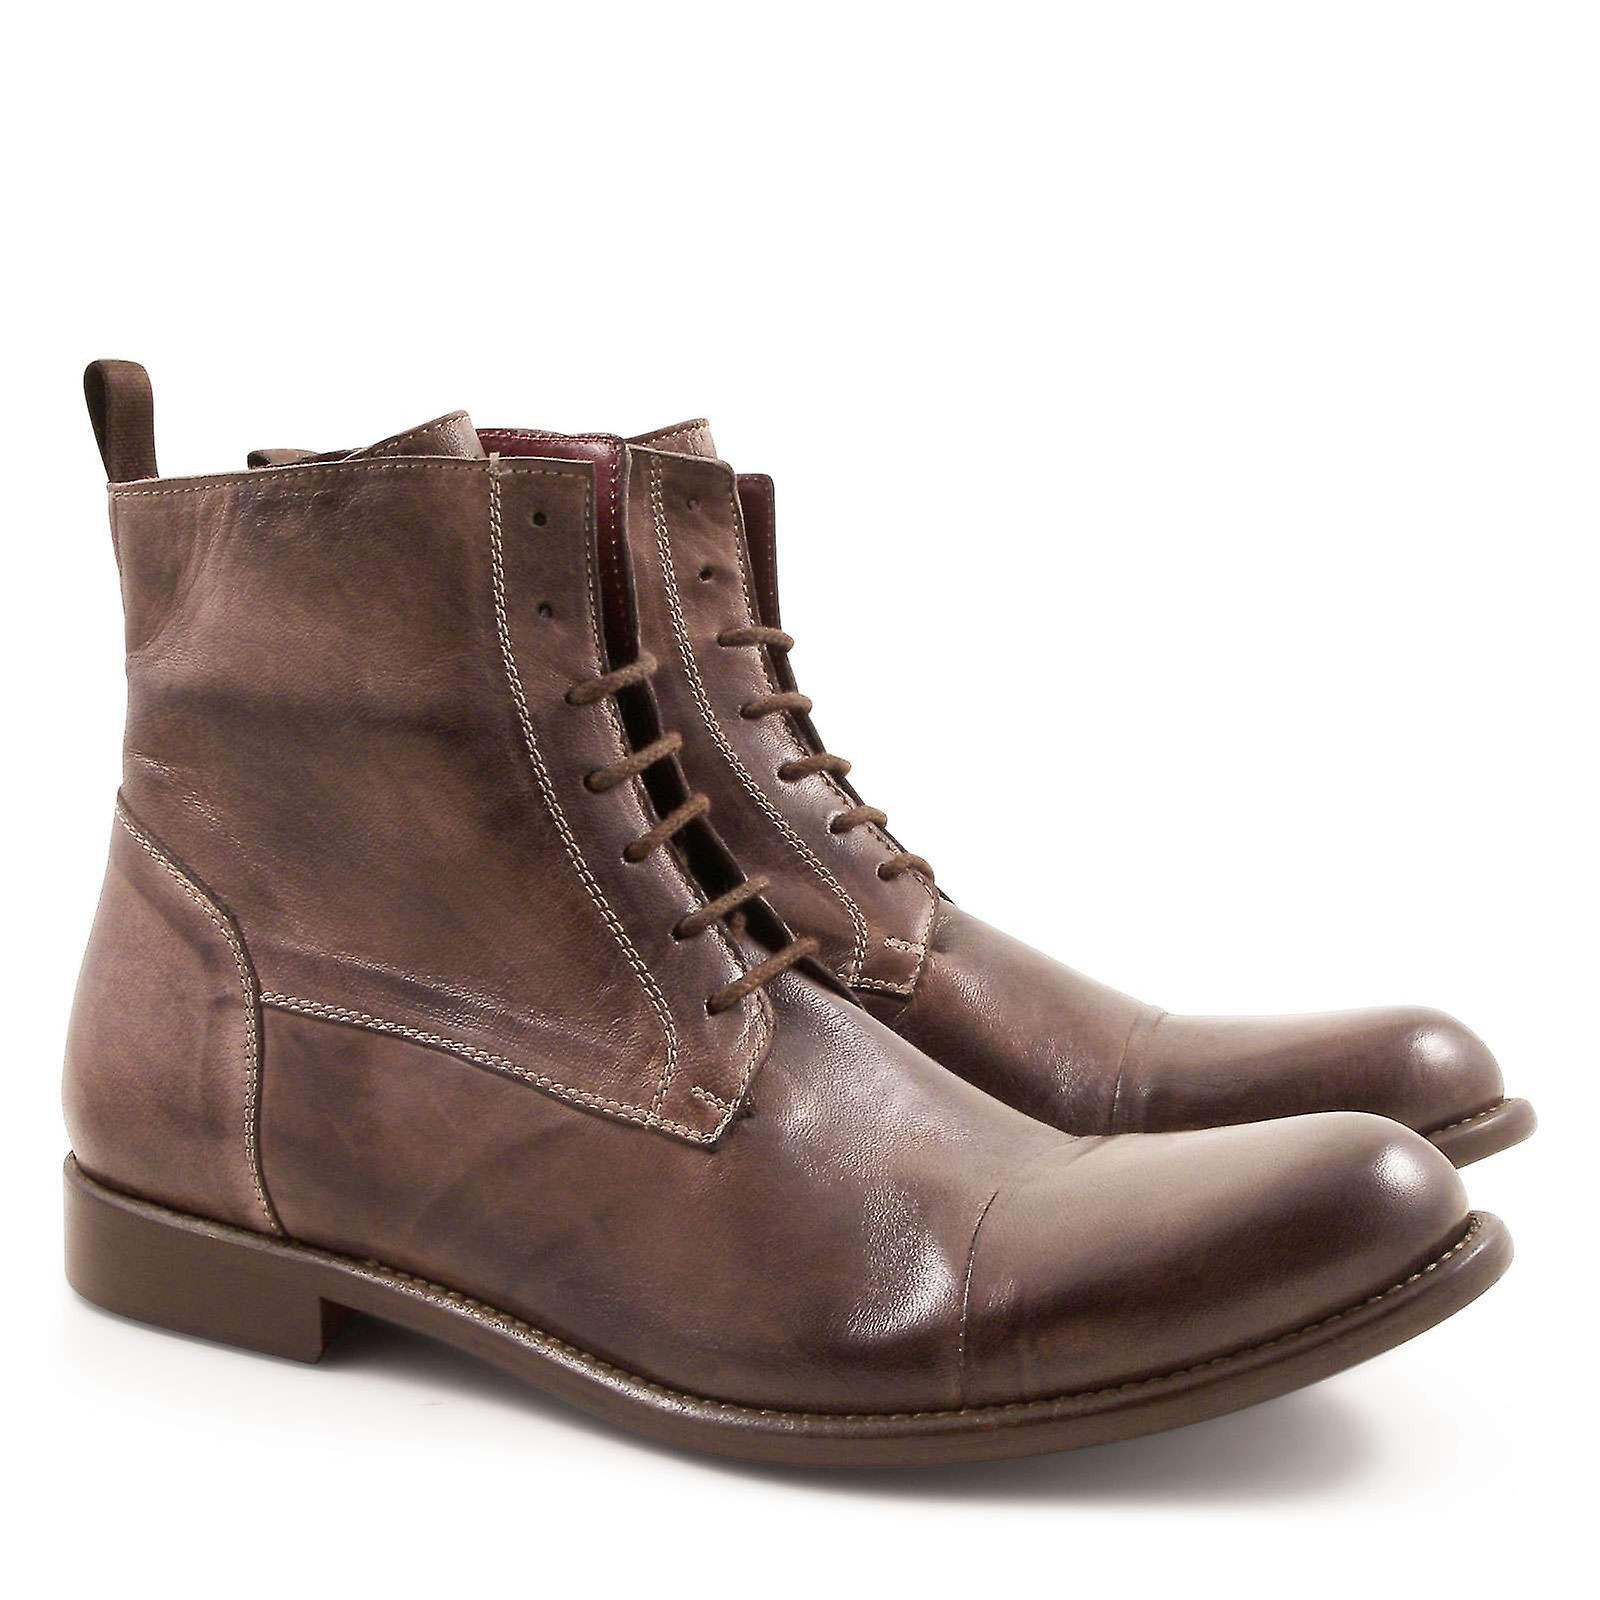 cap ups in derby Lace boots toe Made Italy plain SOwPqE